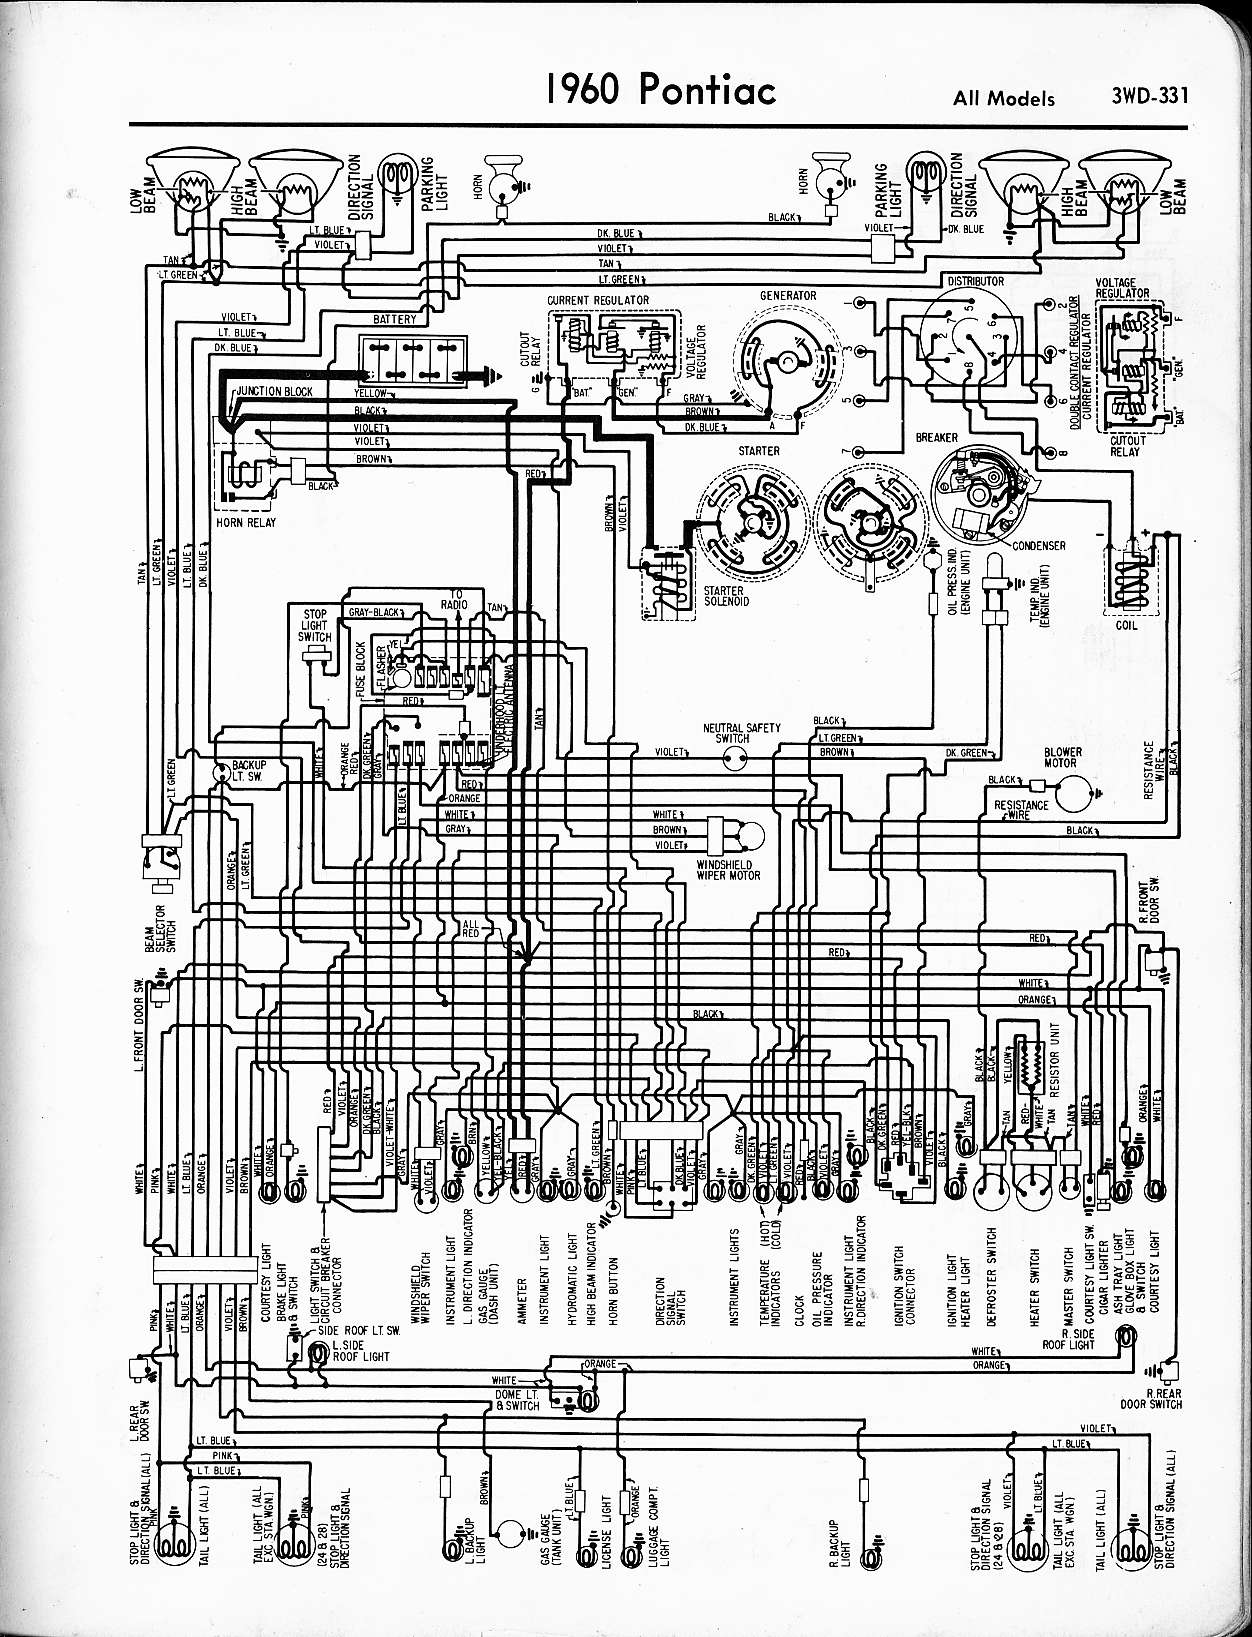 67 Gto Engine Wiring Diagram Reinvent Your Camaro Dash Pontiac For 1961 Electrical Schematics Rh Zavoral Genealogy Com 1964 1967 Convertible